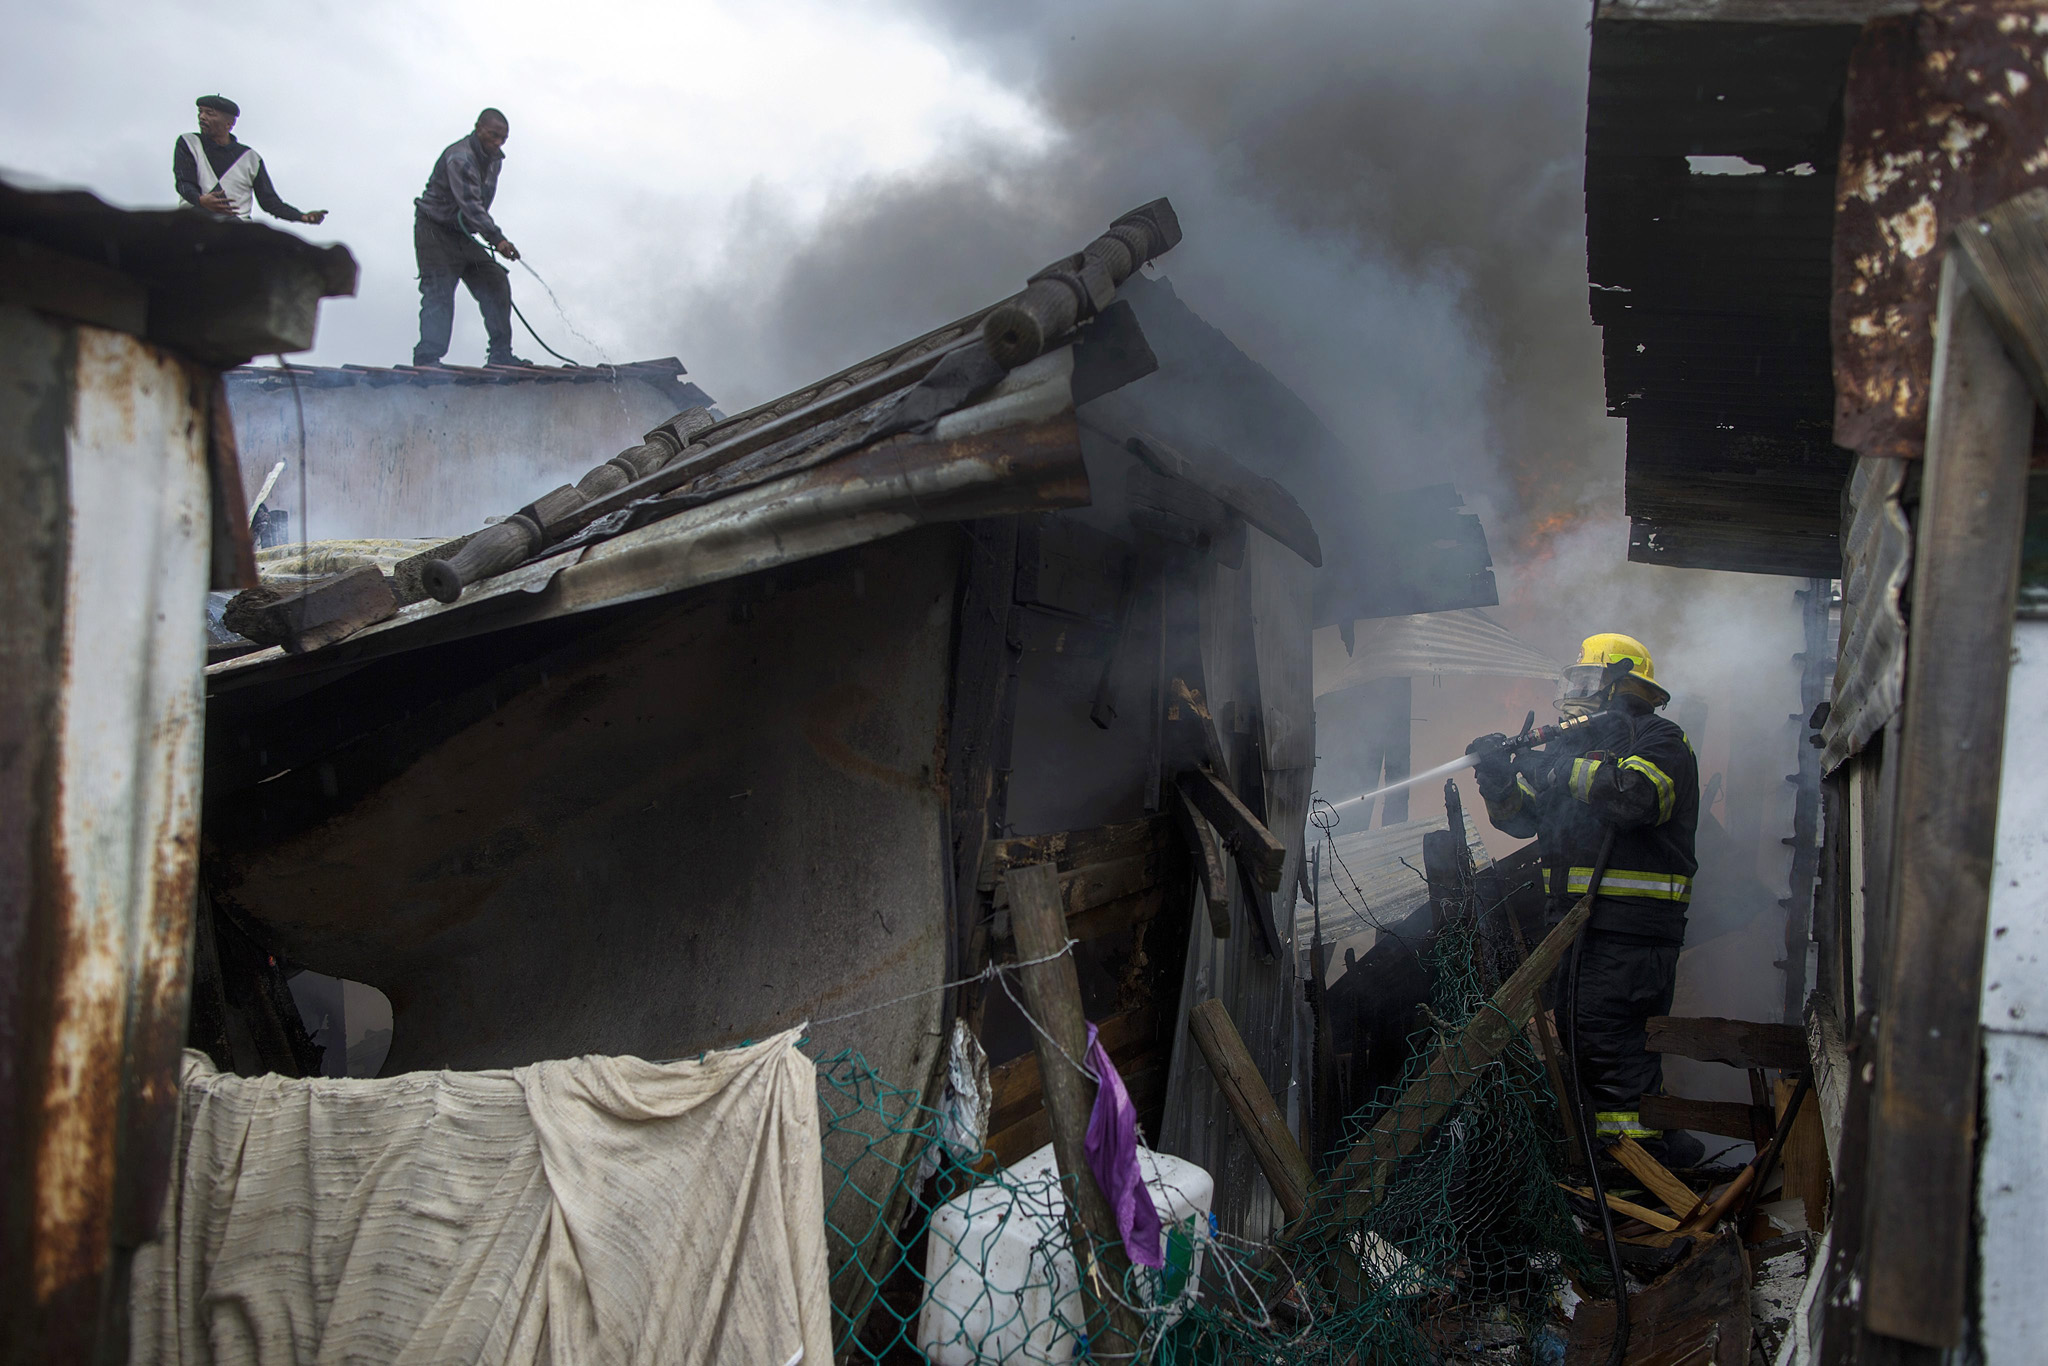 Shack fire in Masiphumelele...epa04474260 South African residents of Masiphumelele assist firemen to extinguish a blaze that devastated parts of the informal shack settlement in Cape Town, South Africa, 03 November 2014. Several shacks were destroyed in the fire which quickly spread in the overpopulated and dense shack settlement. Residents complain of poor access roads for emergency personel who have difficulty getting fire and rescue support to the areas quickly. Inadequate housing and the growing number of informal settlements is one of the major issues facing the government.  EPA/NIC BOTHMA